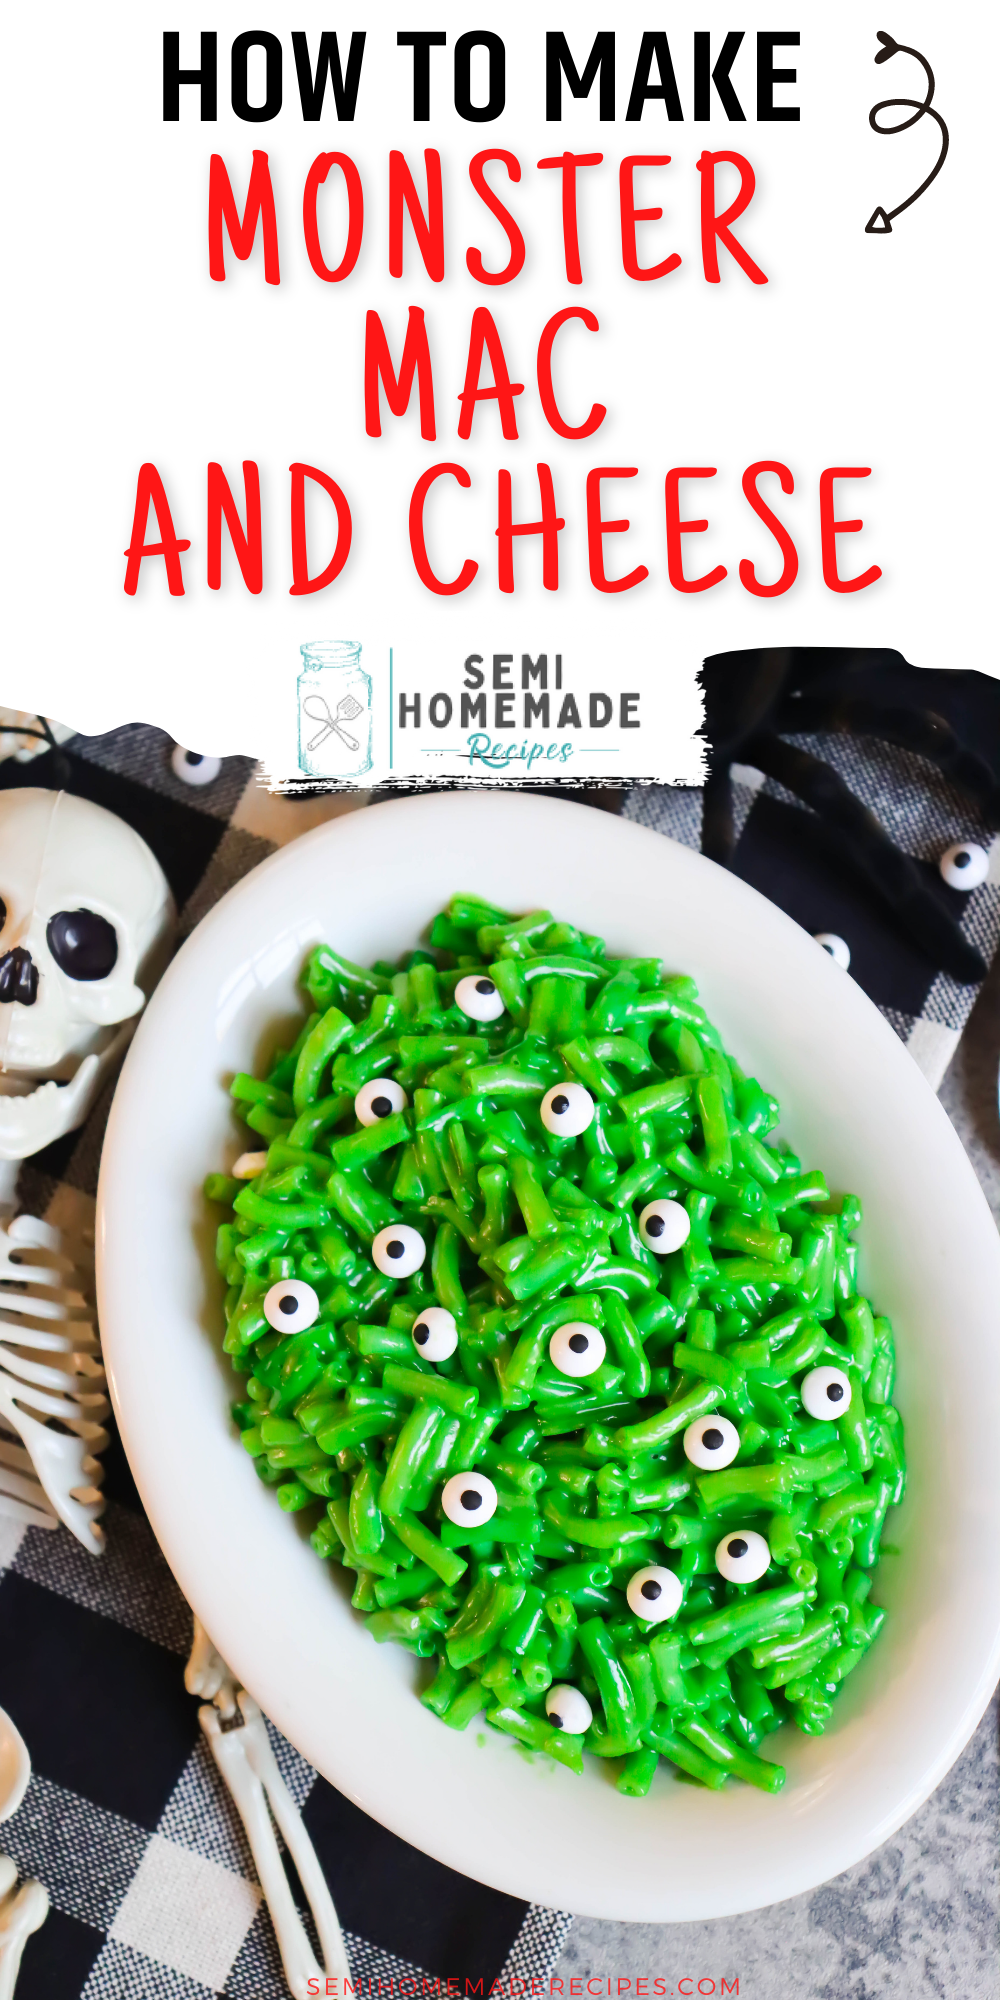 Monster Mac and Cheese - a semi homemade, fun and savory Halloween recipe using macaroni and cheese, green food coloring and candy eyes! This Monster Mac and cheese is the perfect Halloween lunch or Halloween dinner!